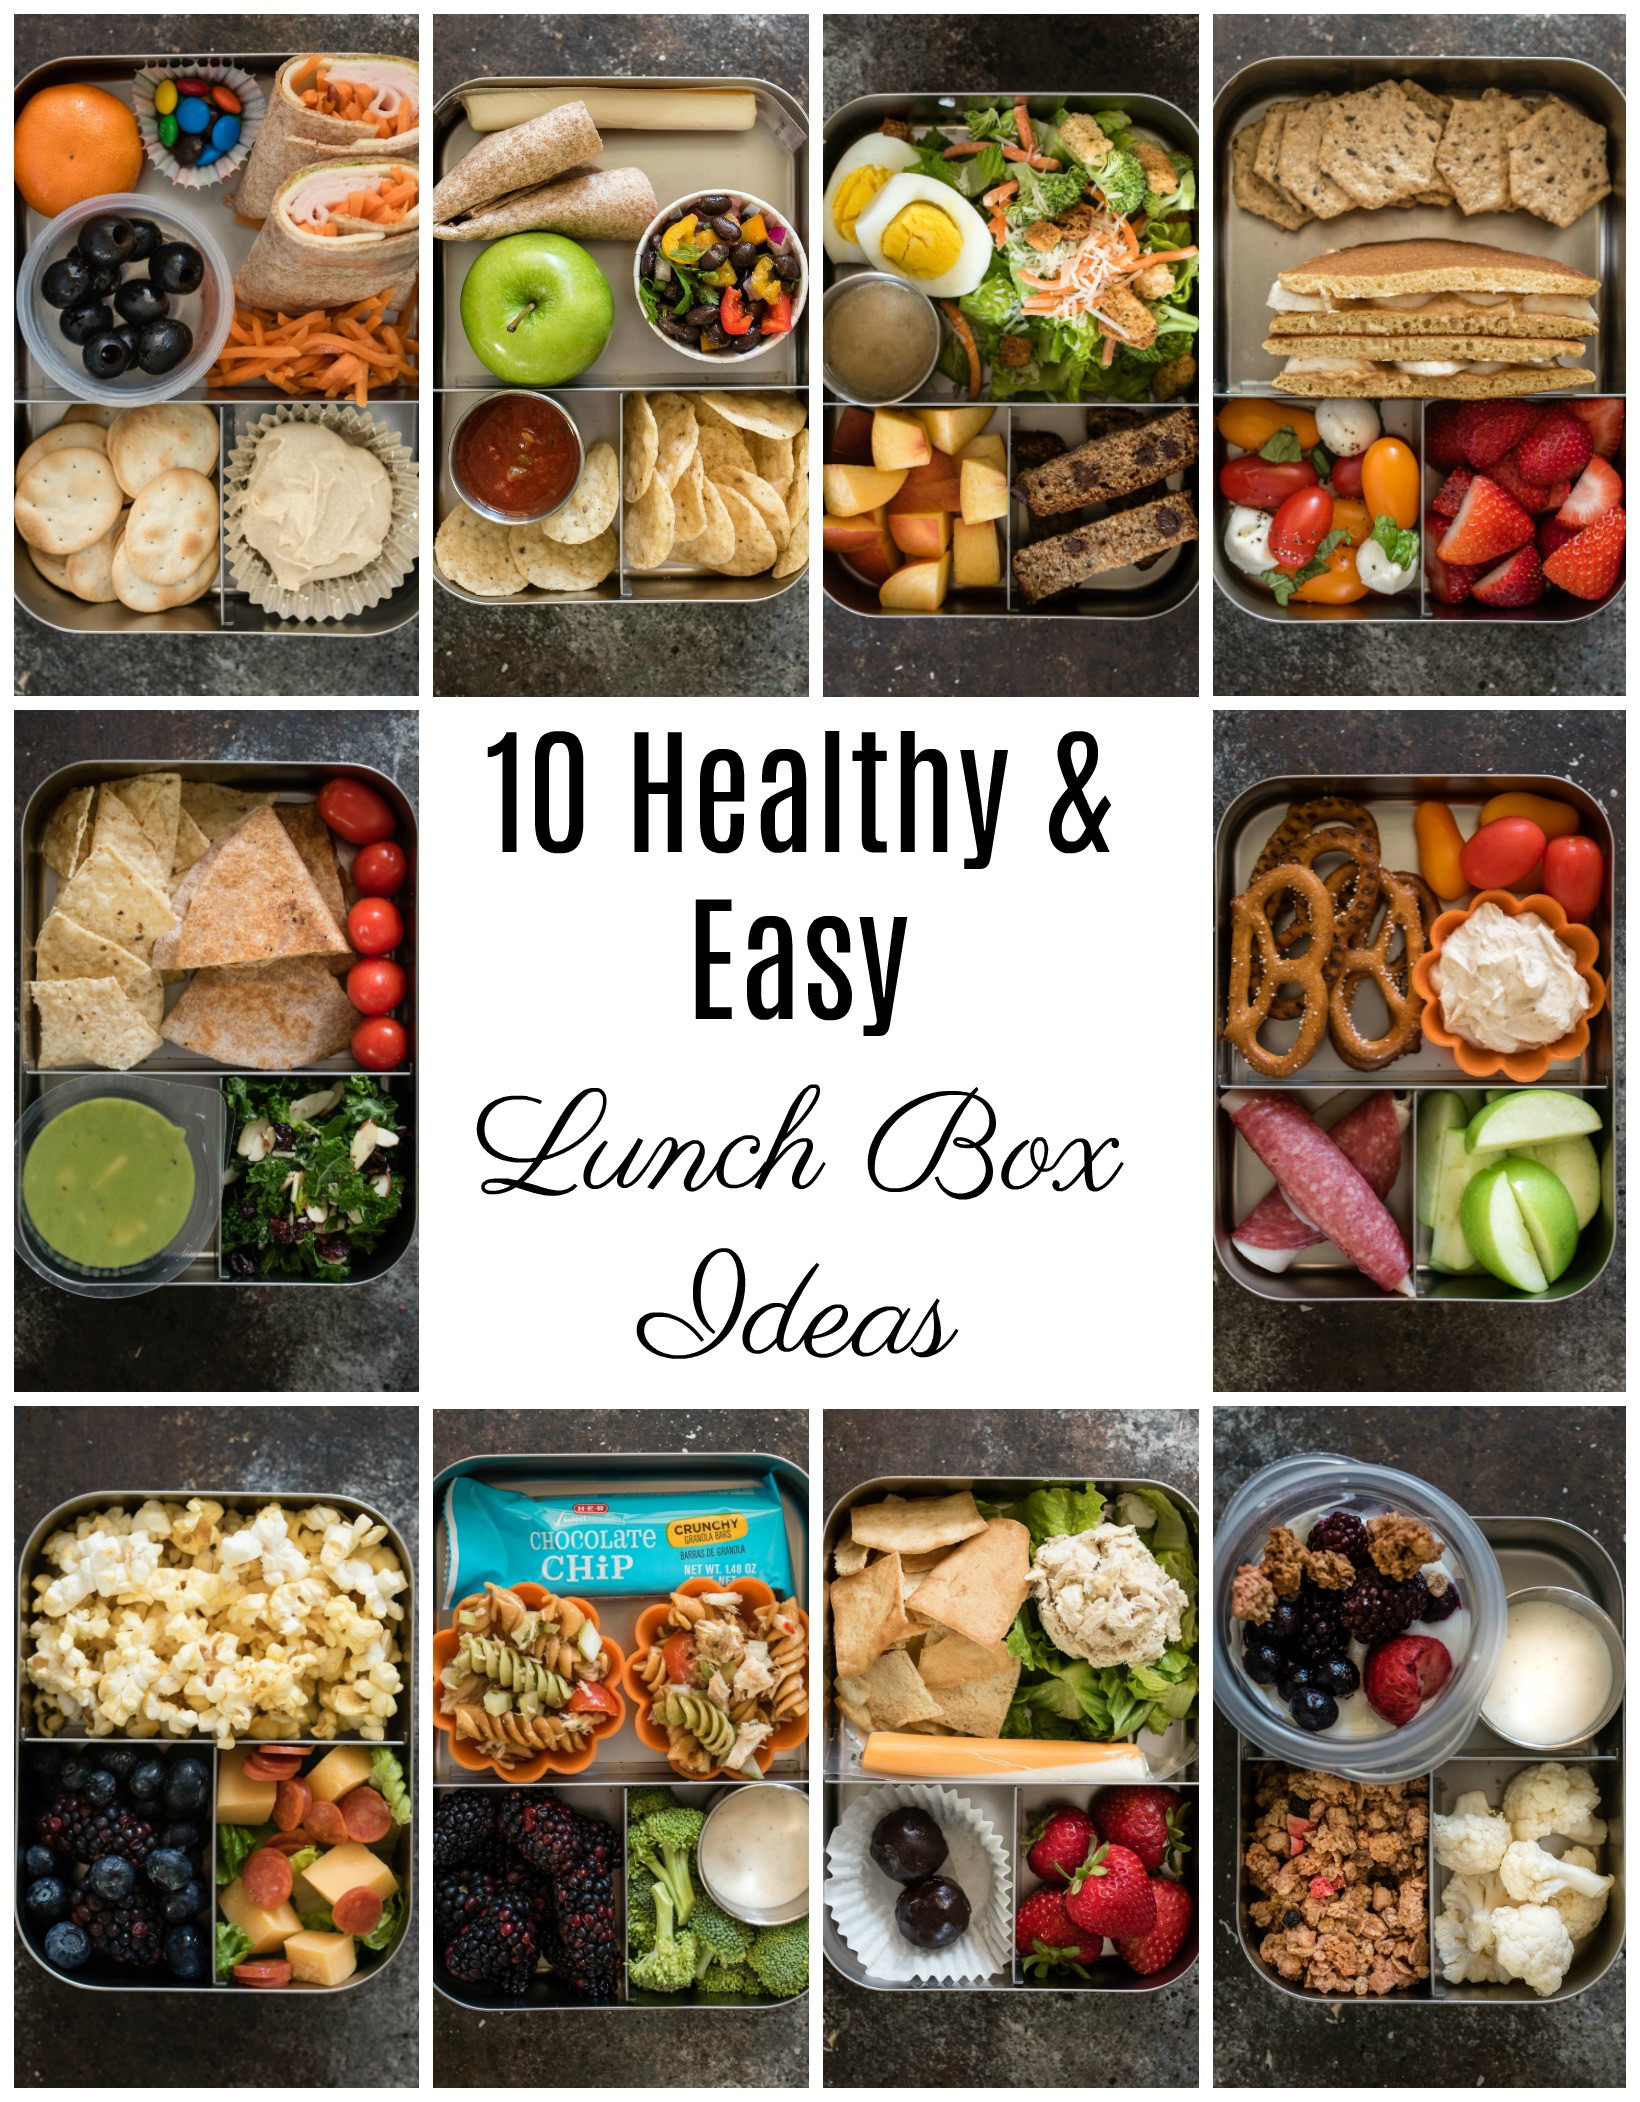 Simple Healthy Lunches  10 Healthy Lunch Box Ideas